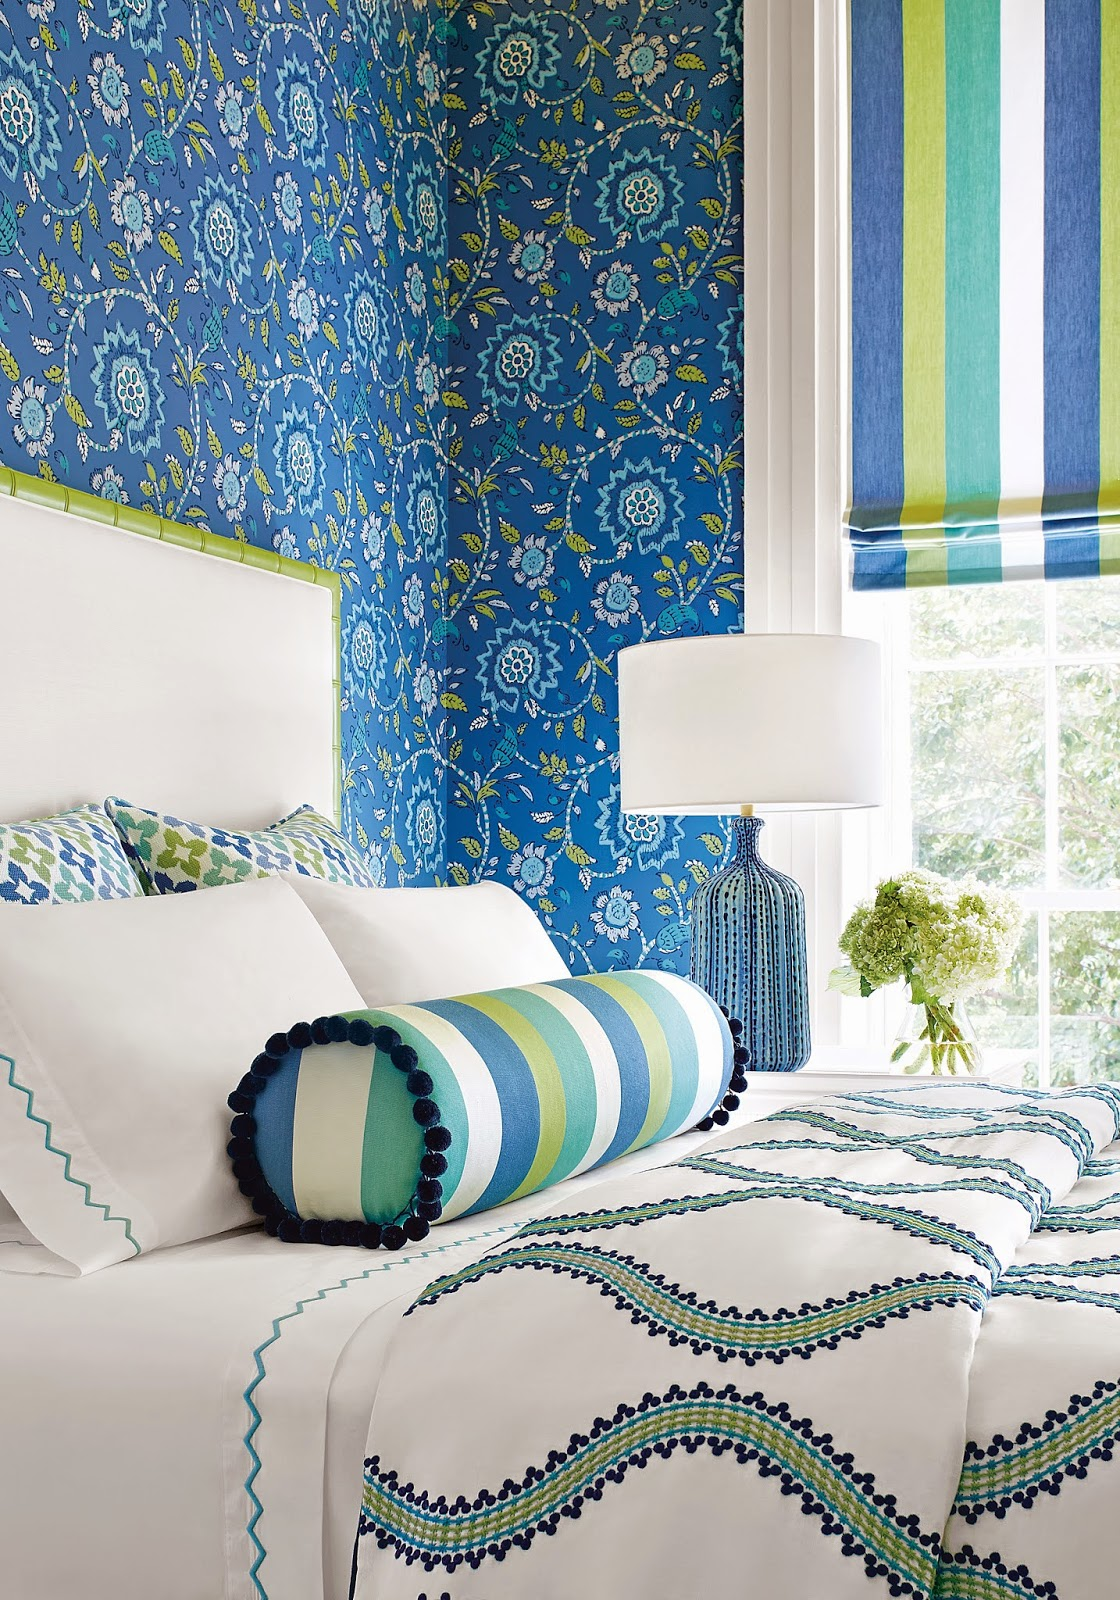 http://thibautdesign.com/catalog/product/details/product/sevita_t64109/material/wallpaper/colorway/blue_and_green_222/